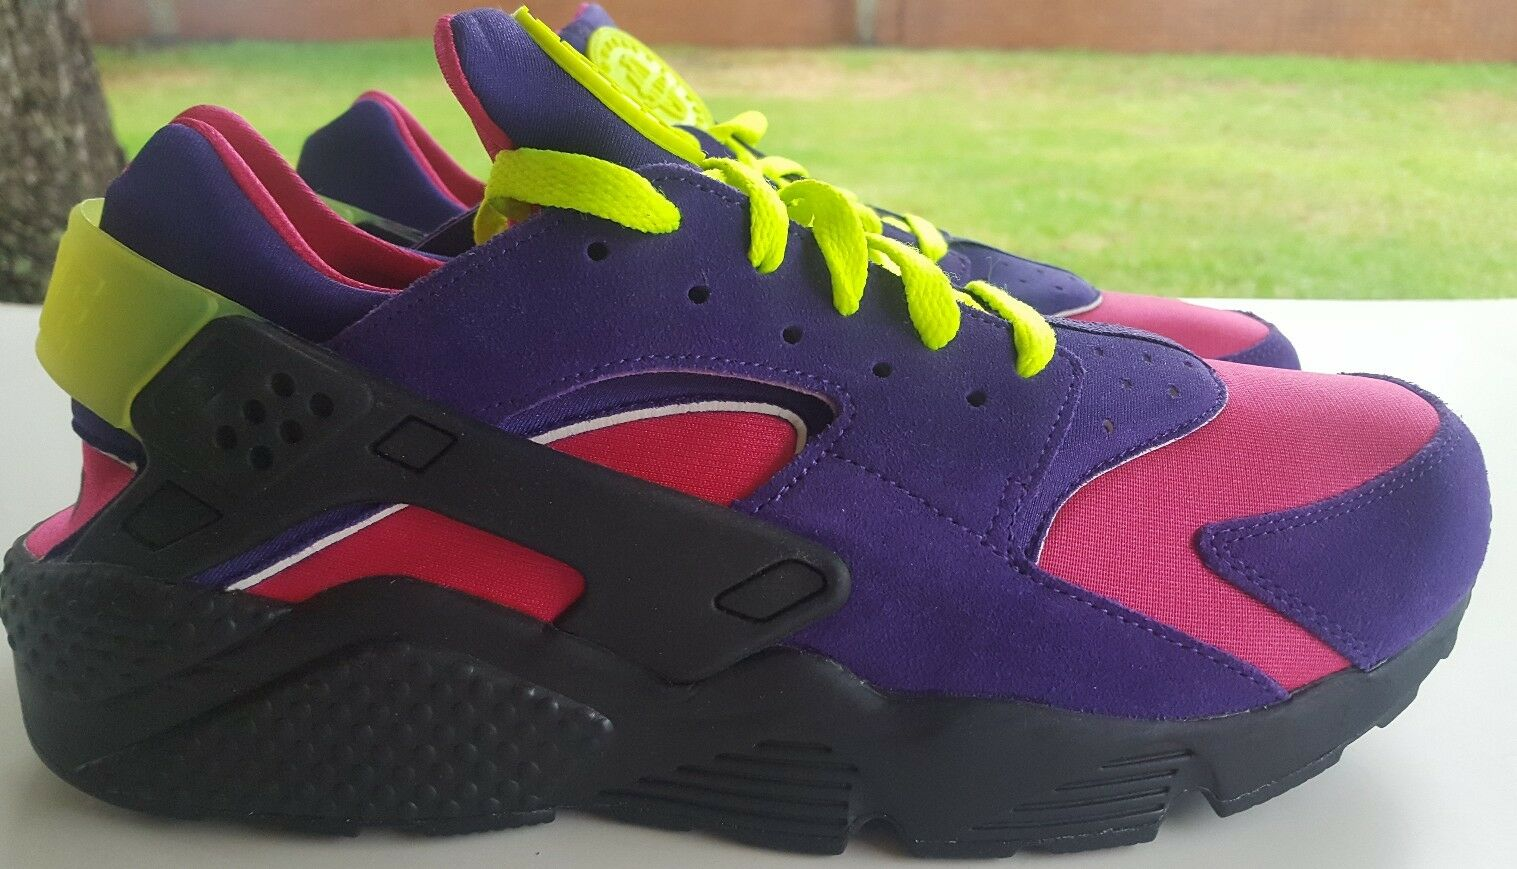 NIKE AIR HUARACHE RUN ID SIZE 11 777330-972